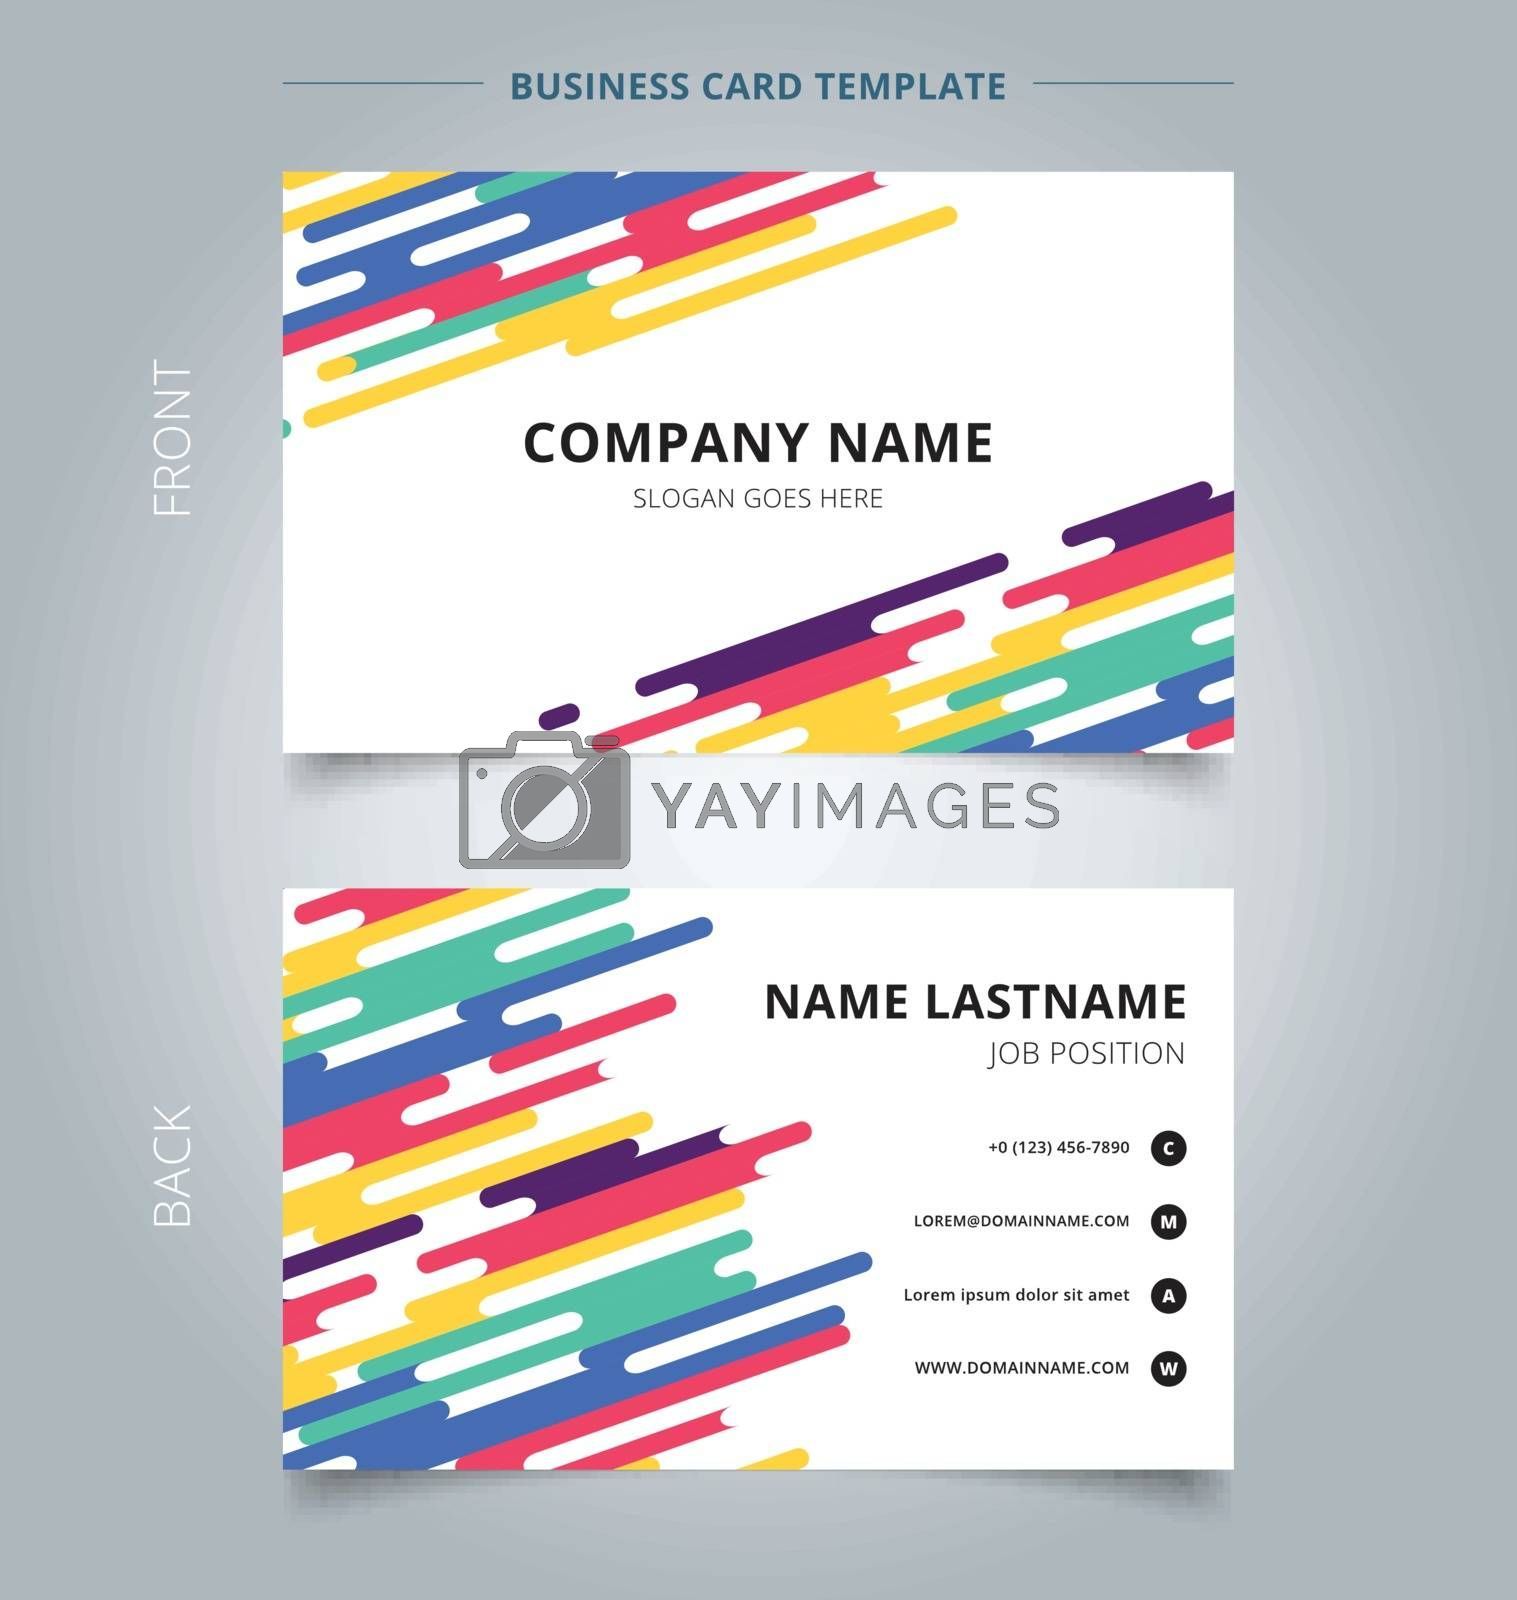 Template name card abstract colorful rounded lines halftone transition background. Vector illustration